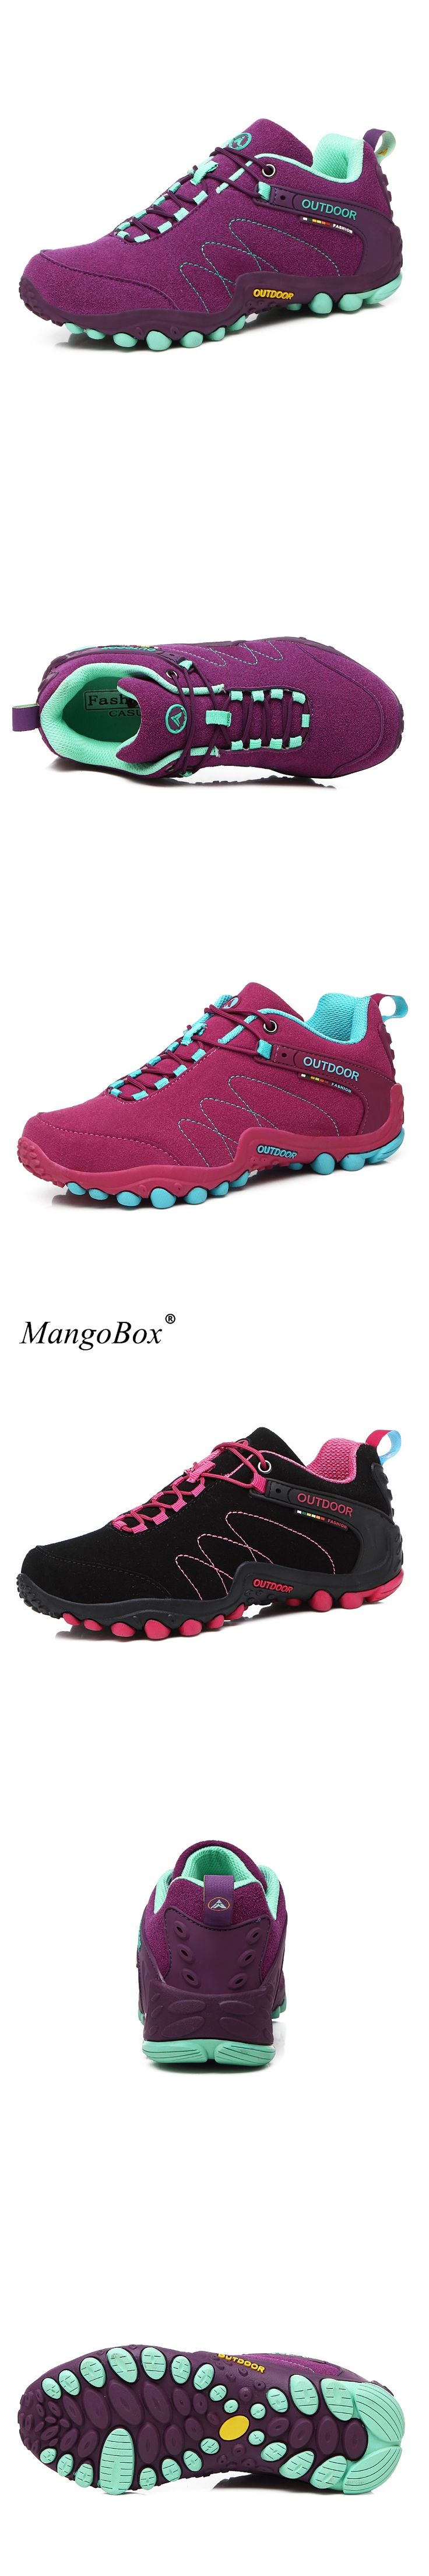 New Womens Hiking Sneakers Spring/Autumn Mountain Walking Boots Leather Trekking Shoes Black/Red Outdoor Sport Shoes